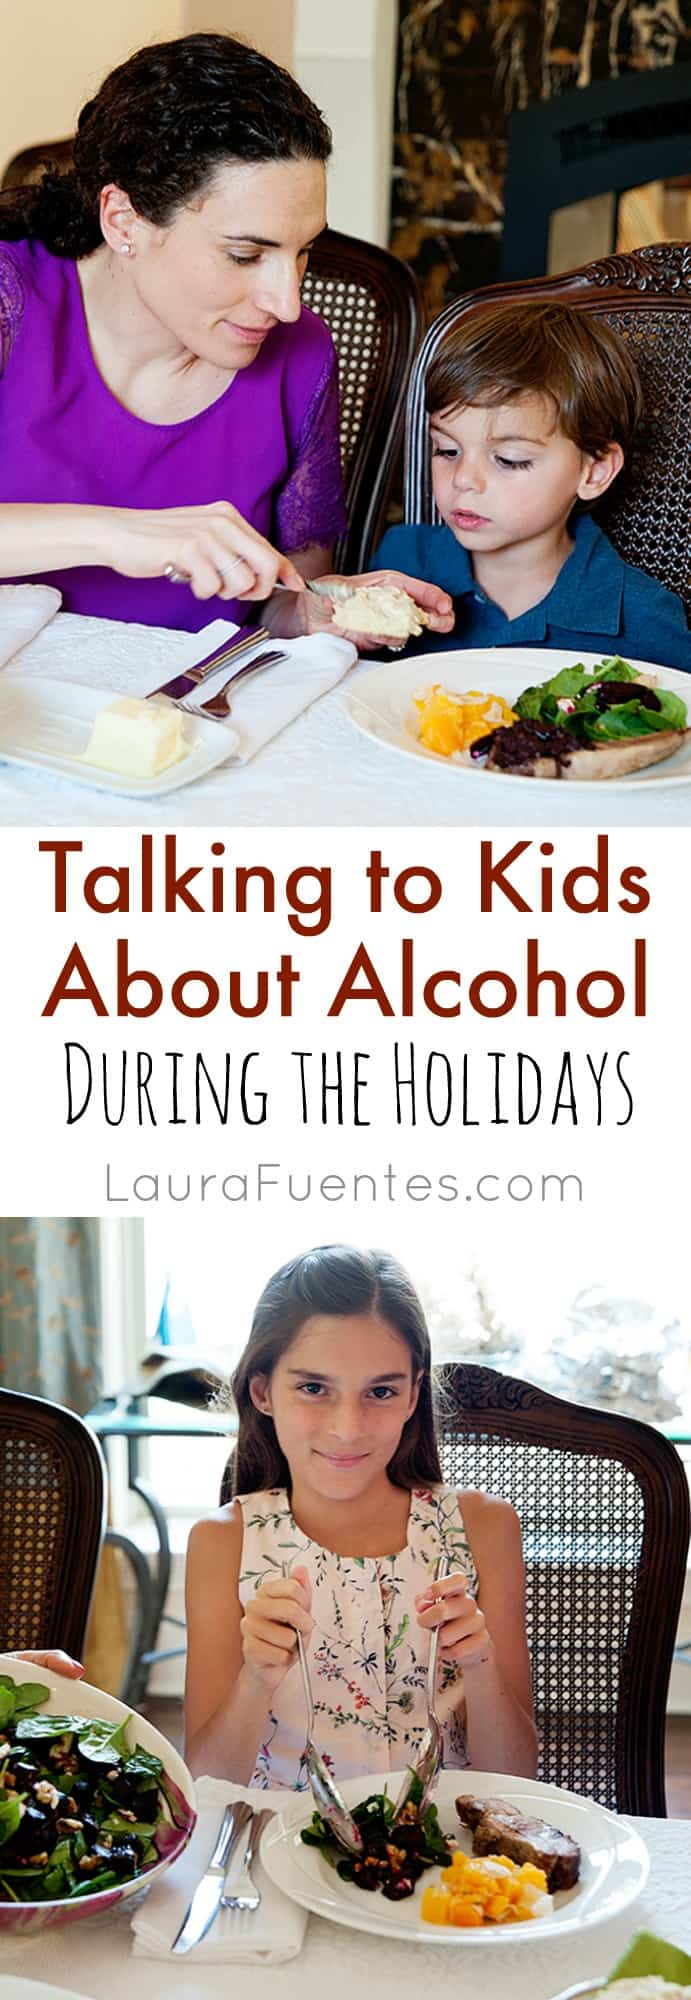 Celebrating the holidays safely is important as well as having difficult conversations with our kids regarding alcohol. Since parenting did not come with a handbook, I depend on helpful organizations like Responsibility.org